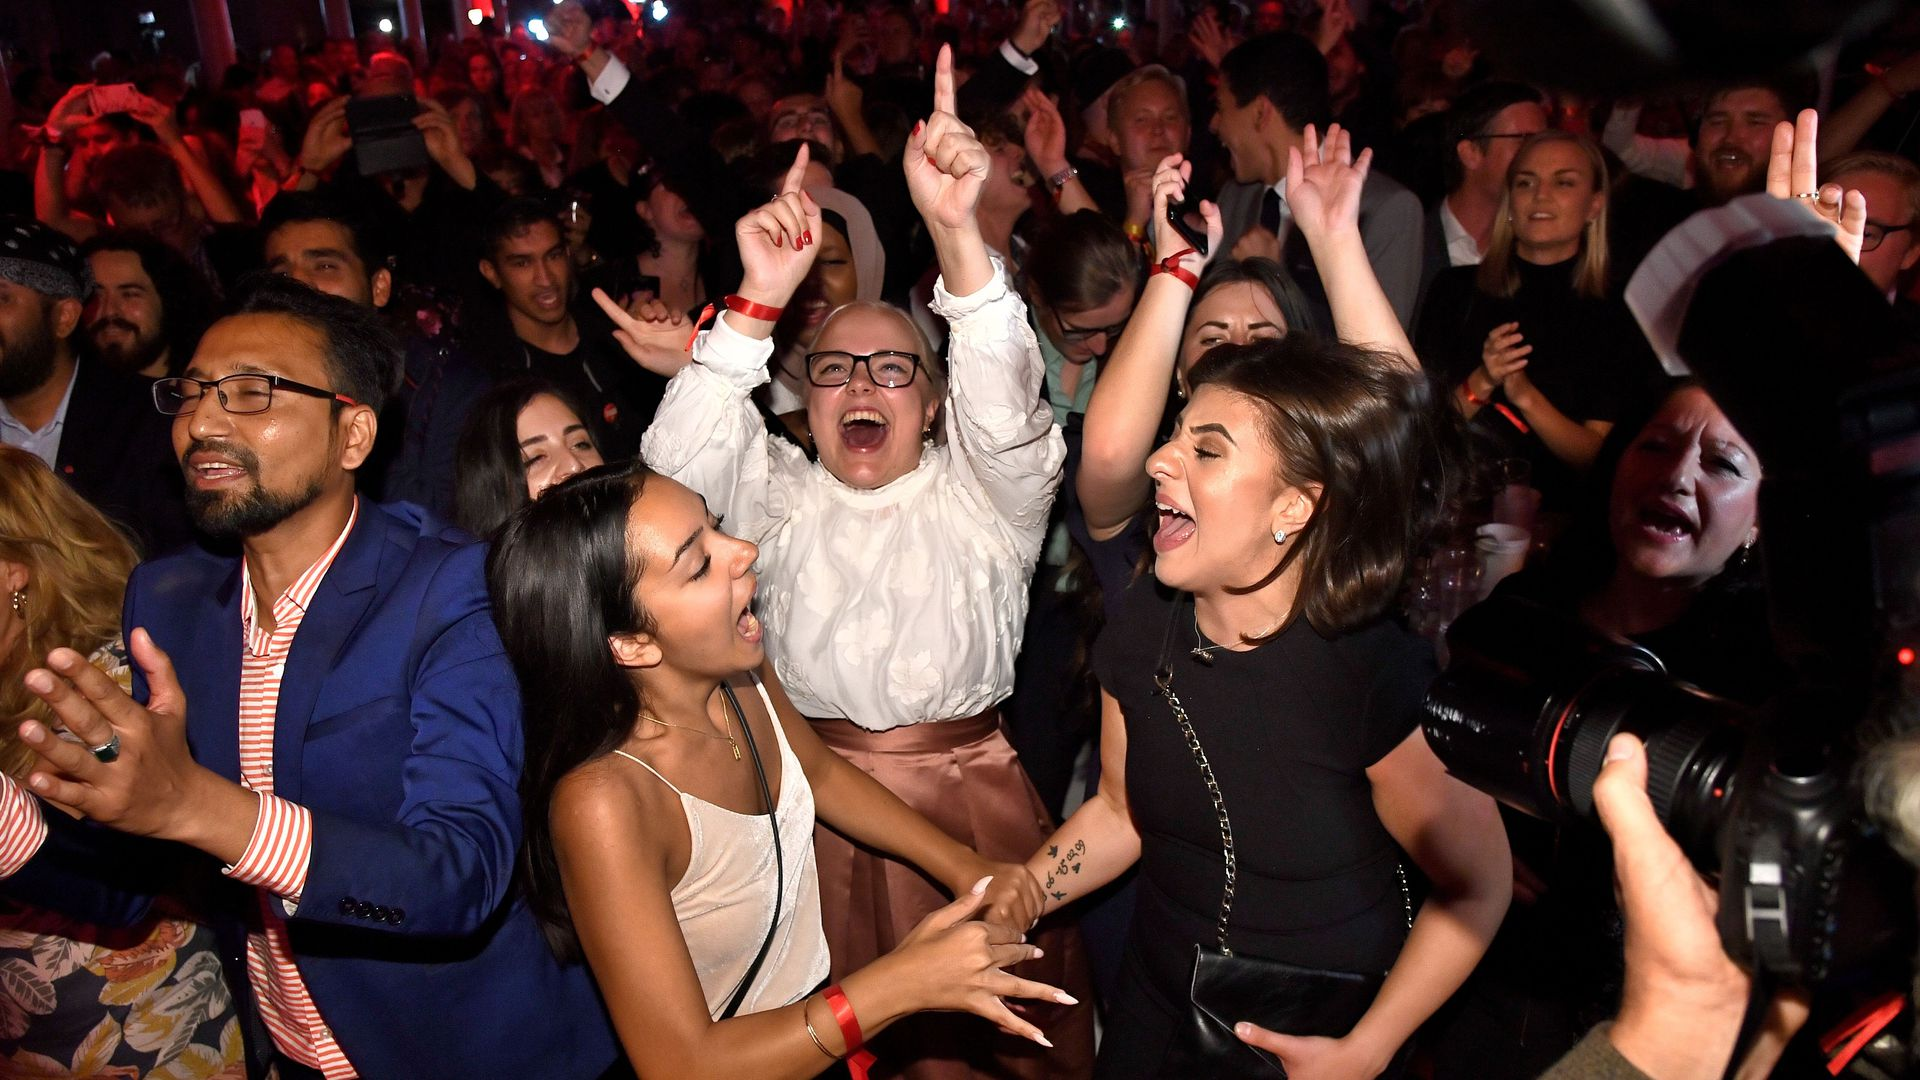 Supporters of Sweden's Social Democrat party celebrate